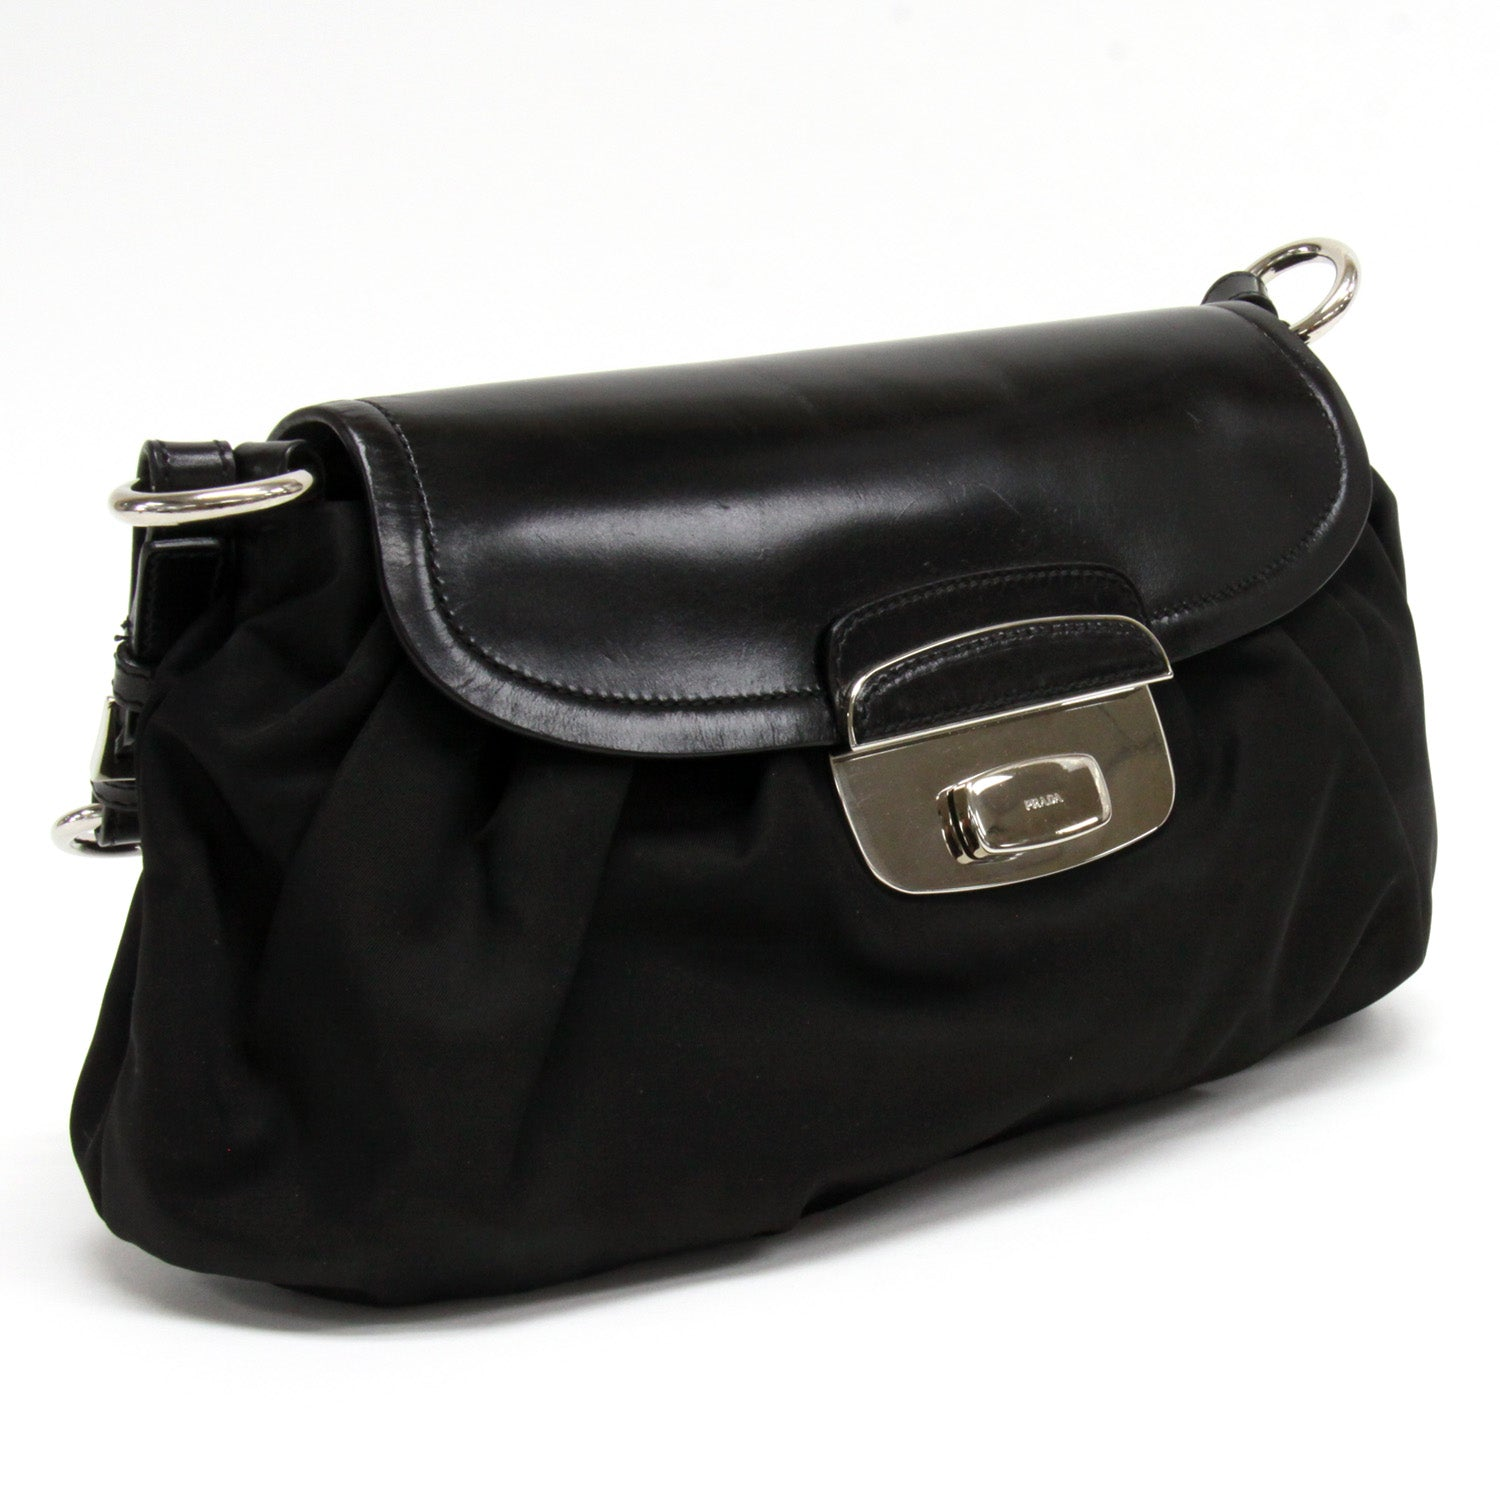 5a87a82e8add ... Load image into Gallery viewer, Prada Black Nylon Leather Silver  Hardware Flap Shoulder Bag ...